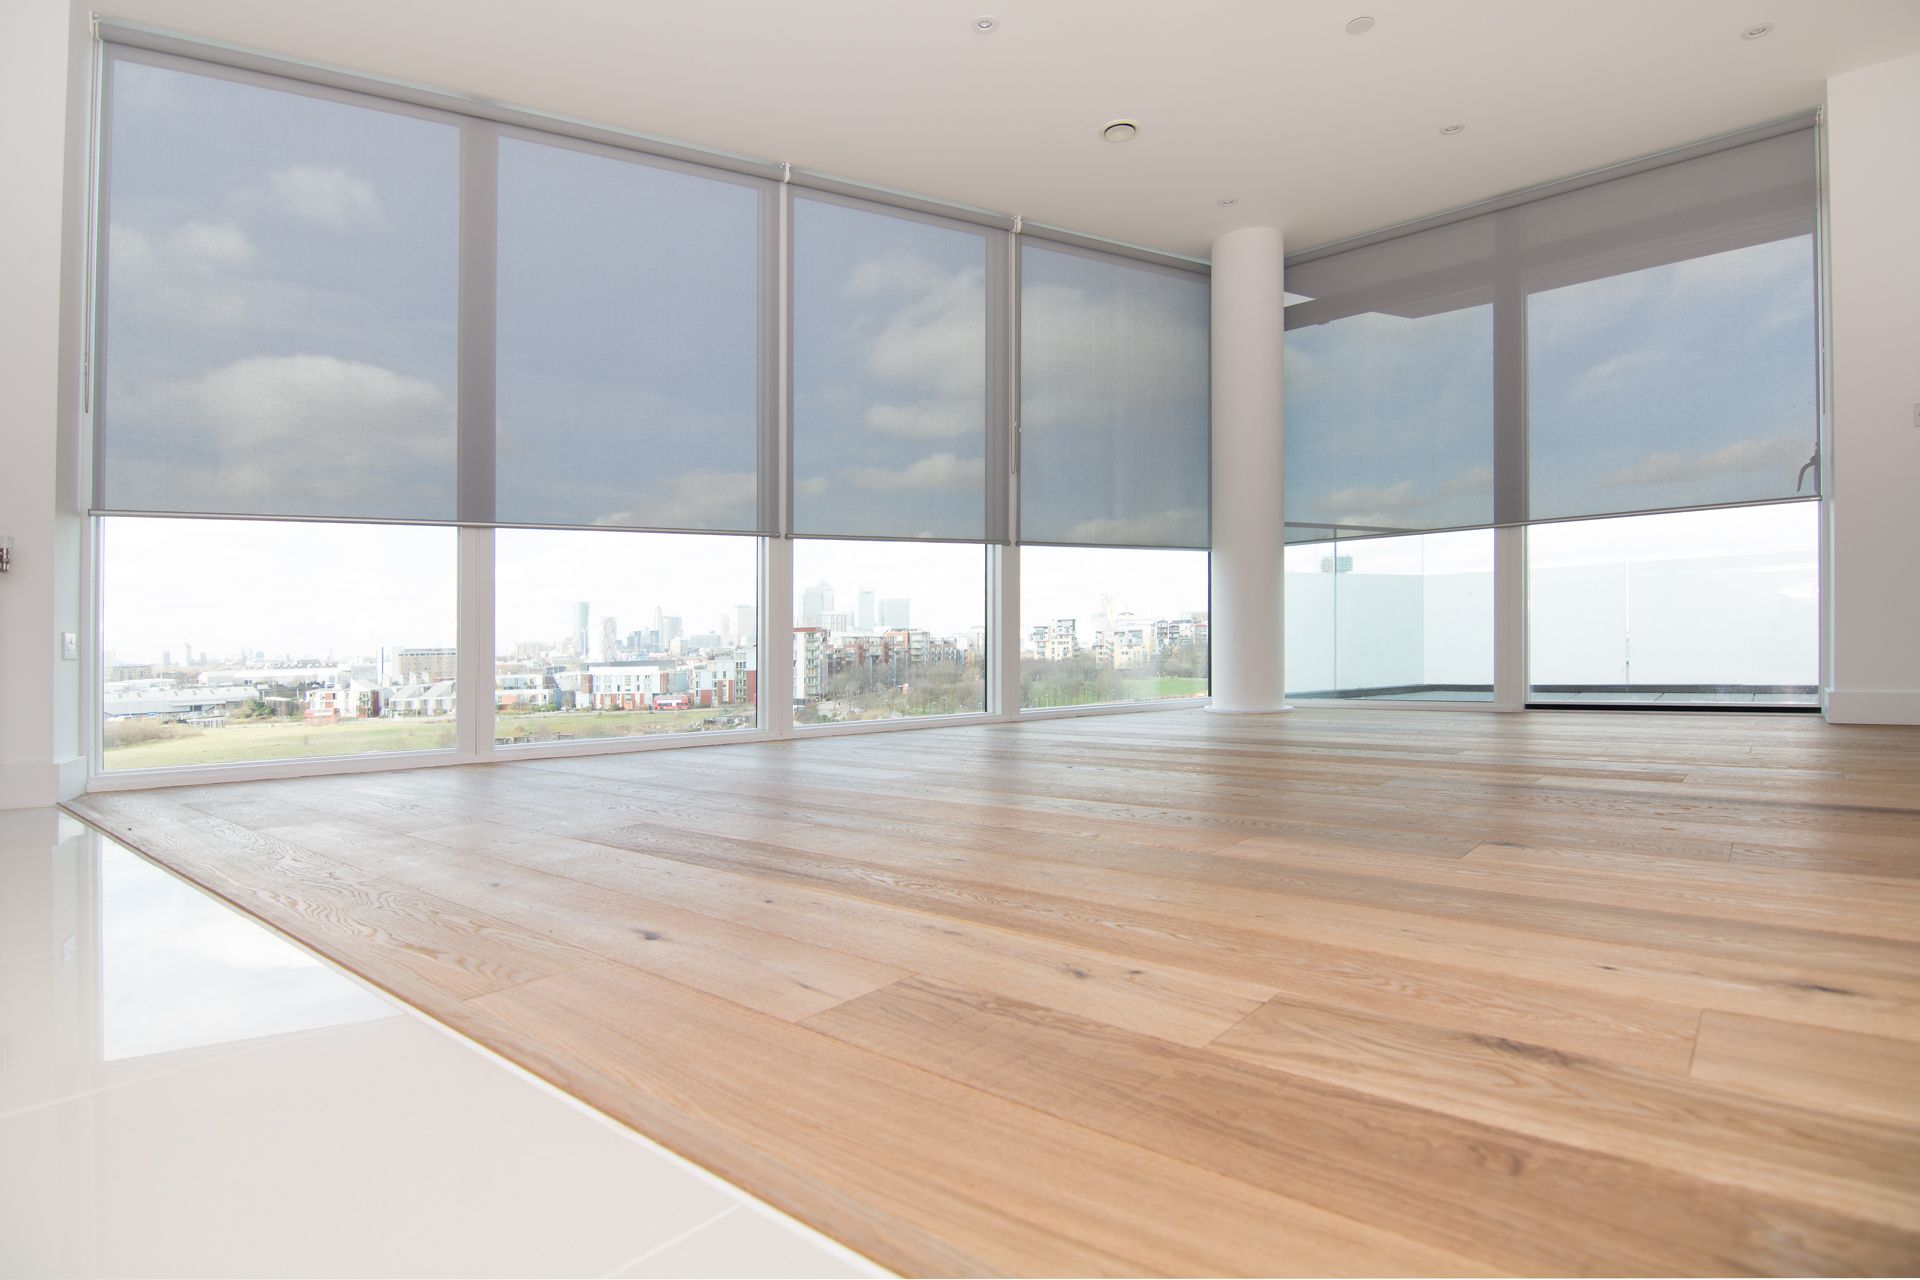 Floor To Ceiling Windows Apartment With A Bright Panoramic View I Love My Domedecor Interiordesign Floortoceilingwindows